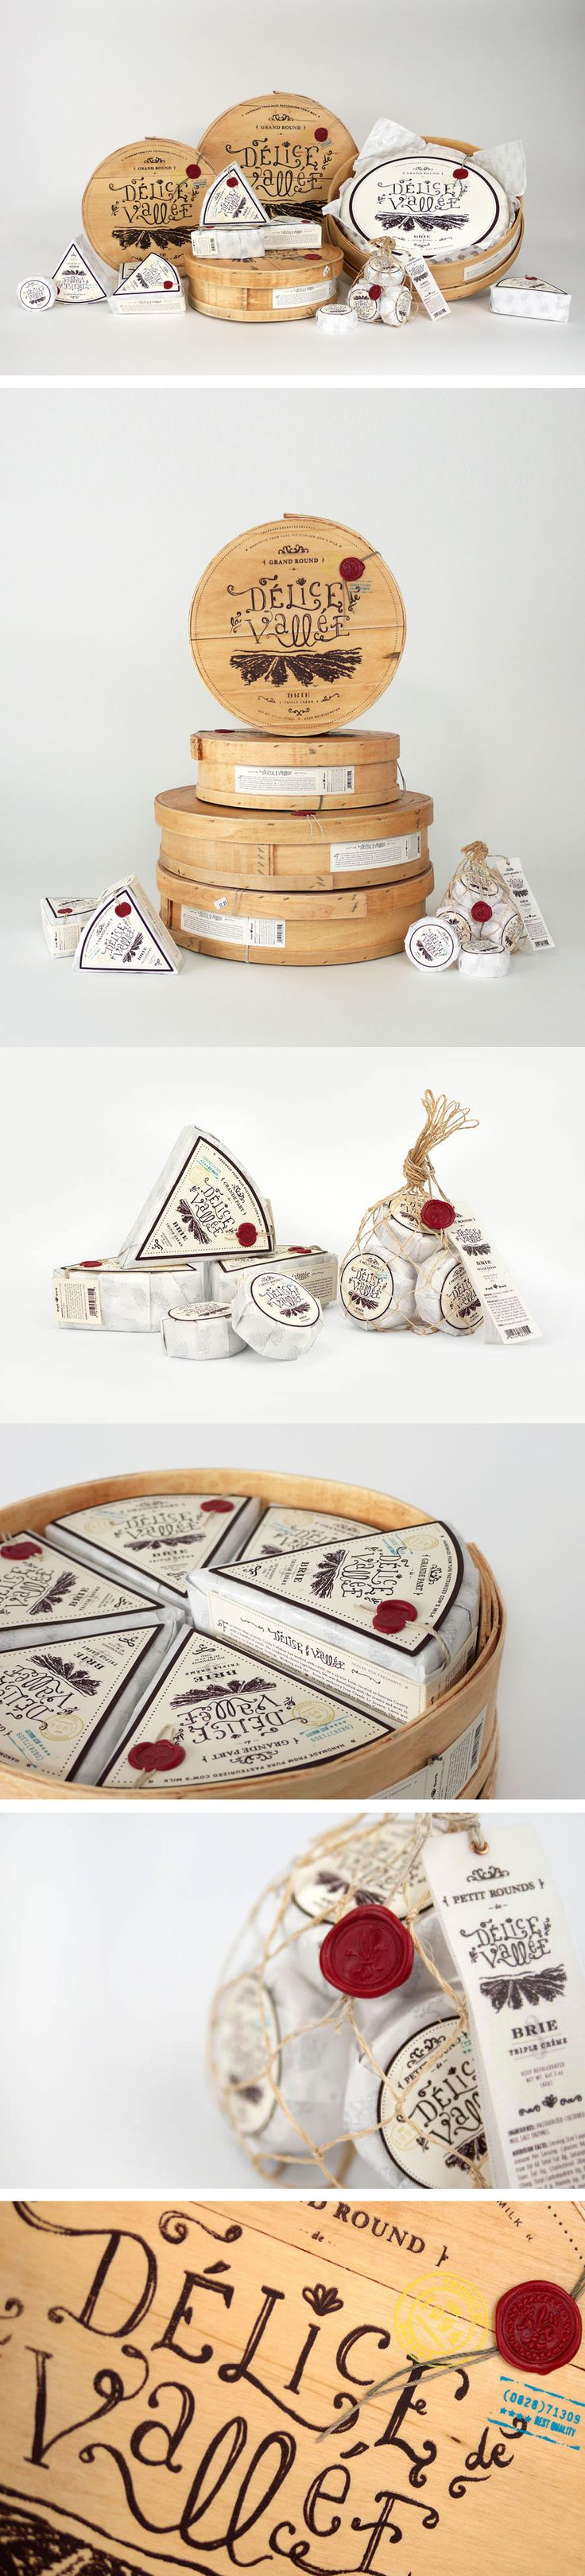 by FRED CARRIEDO.  I really love this design for chesse. The outer case has a beautiful neutral tan color wrapped in string. And the cheese itself is wrapped all so delicately in white and black. I love the typography and the personal feel to this packaging.